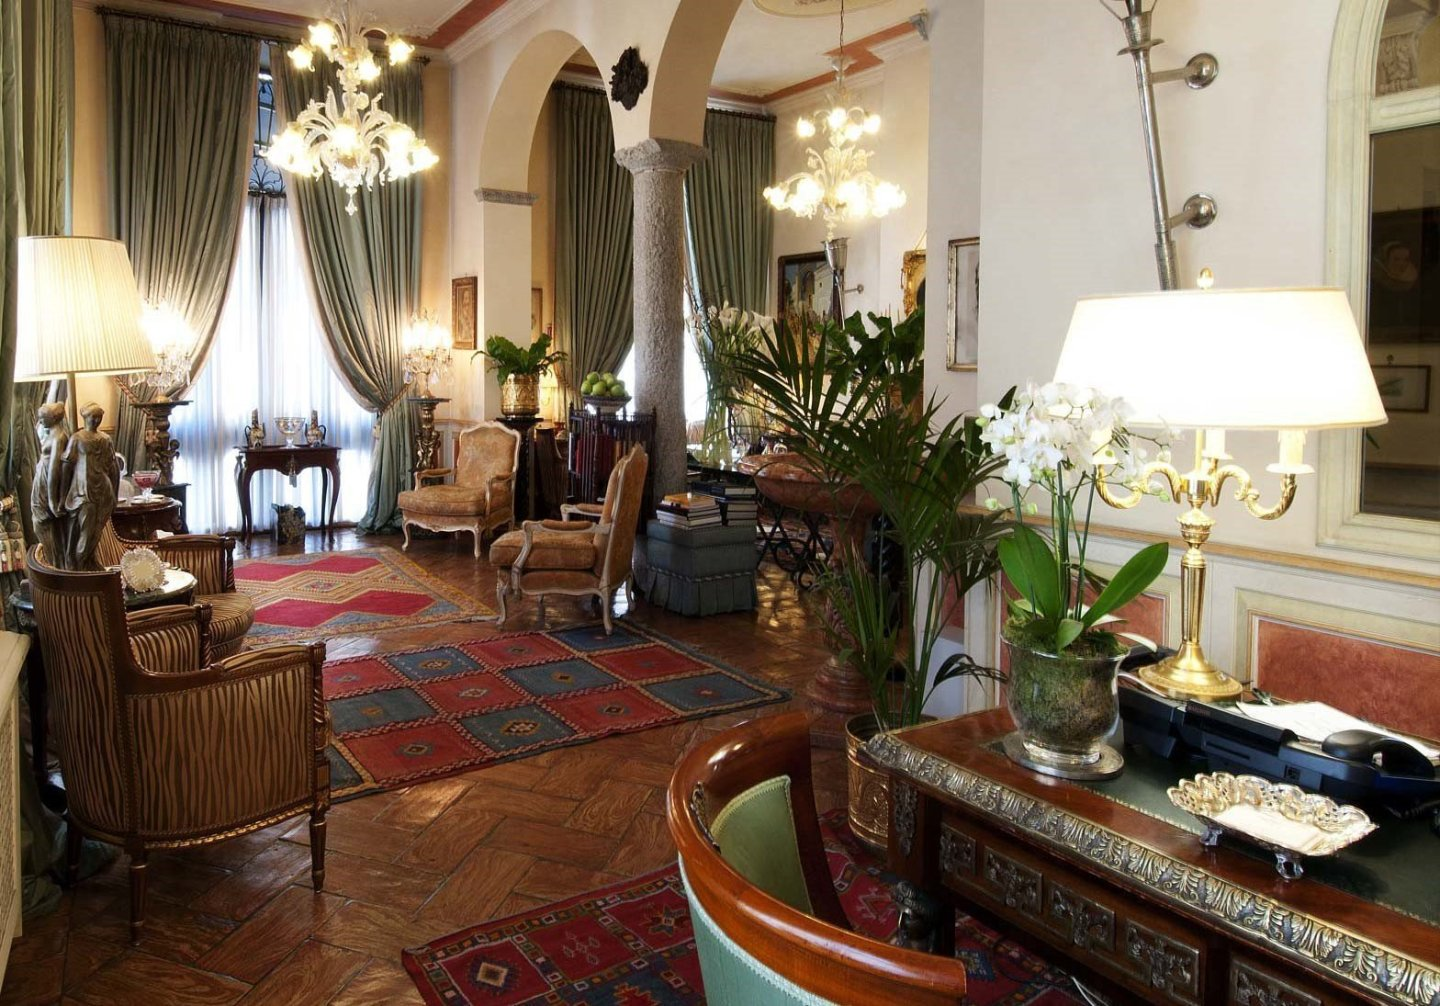 Petit Palais Hotel de Charme, a luxury stay in Milan